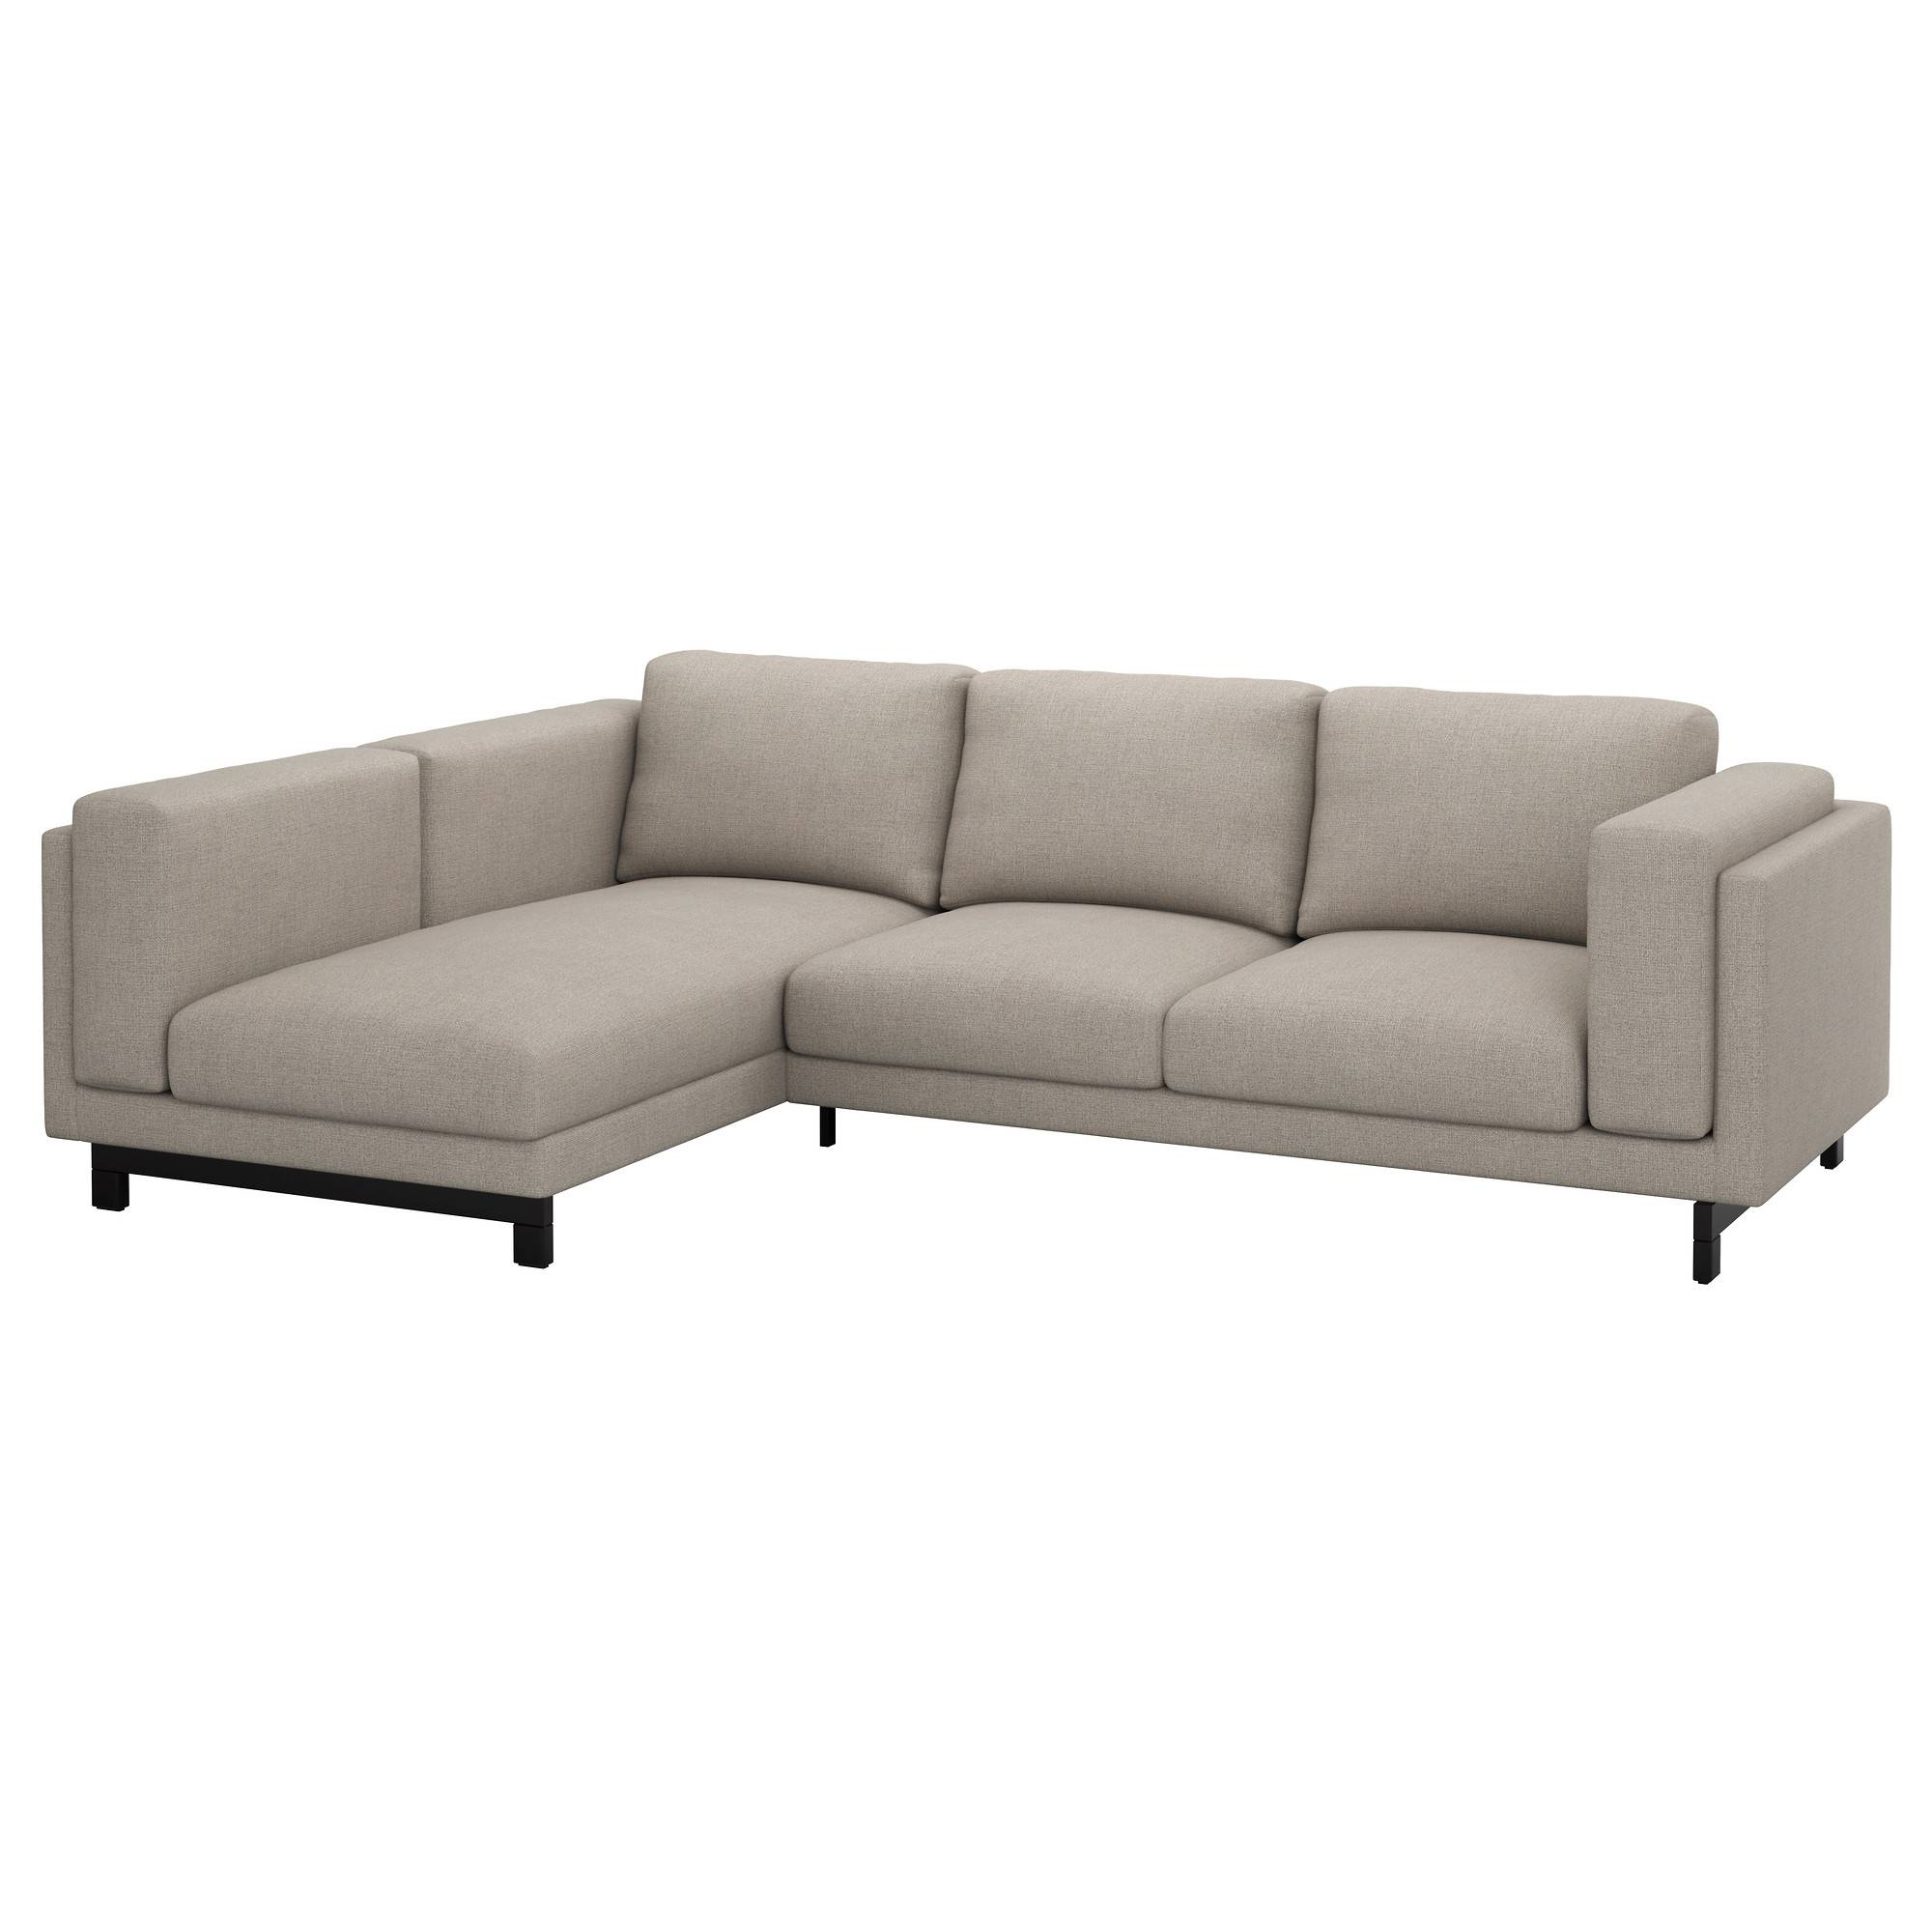 Nockeby Two-Seat Sofa W Chaise Longue Left Tenö Light Grey/wood - Ikea pertaining to Ikea Two Seater Sofas (Image 18 of 30)